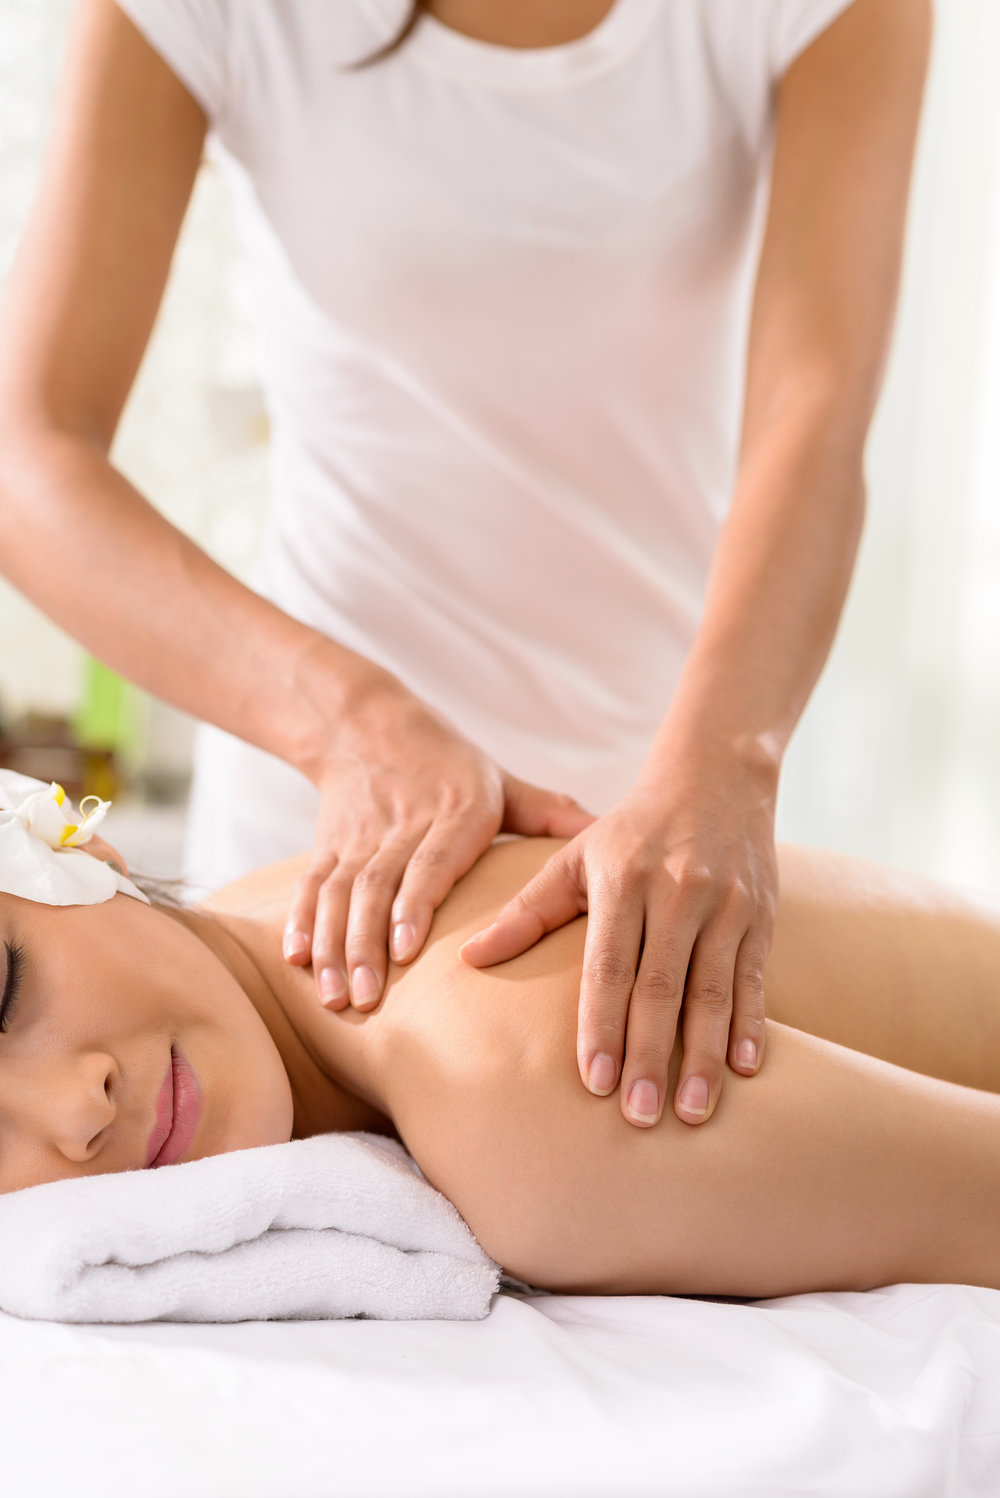 In-Home Massage - Massage therapy is an effective treatment for reducing stress, pain and muscle tension and a great way to spend some quality time recharging your batteries. Your busy schedule may not allow you to take advantage of these benefits as often as you'd like and that's where we come in. You pick the time and place and let your therapist handle everything else.Learn more about massage ➝